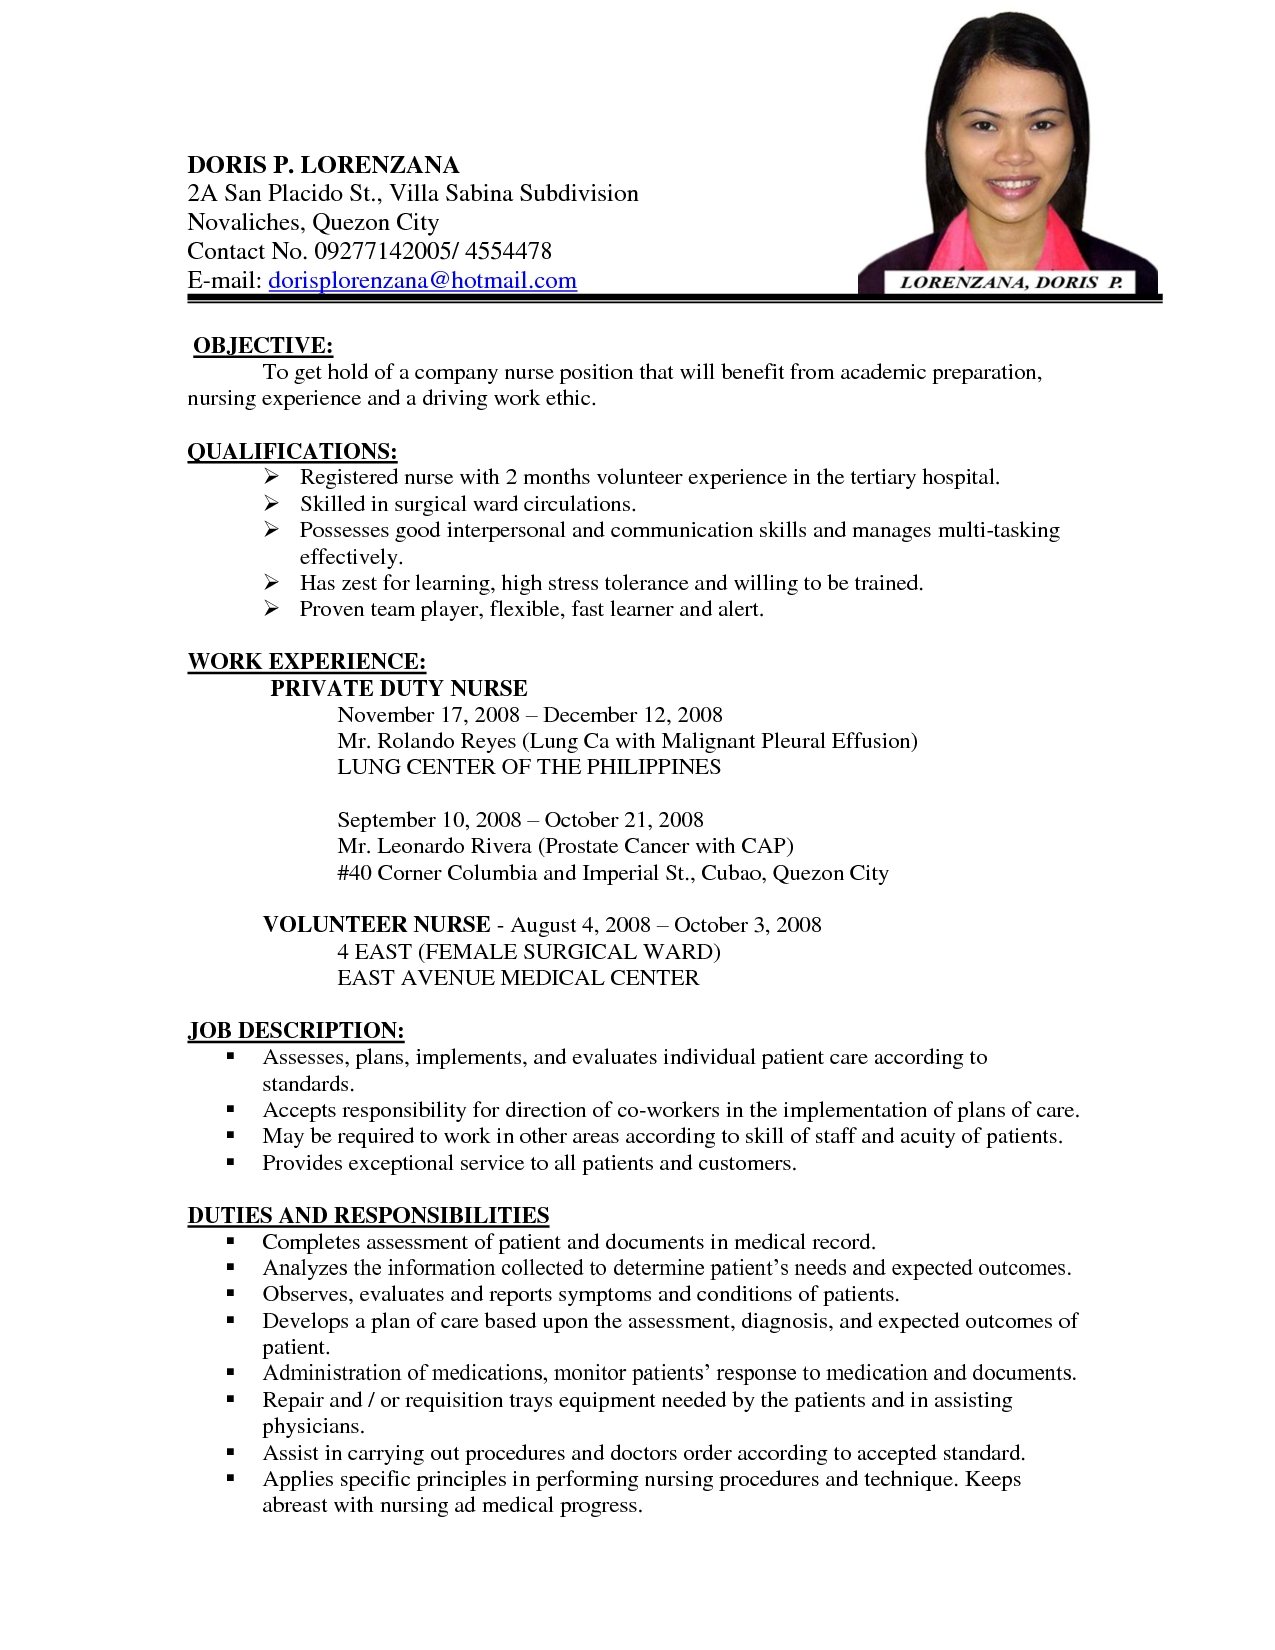 Sample Nursing Curriculum Vitae Templates